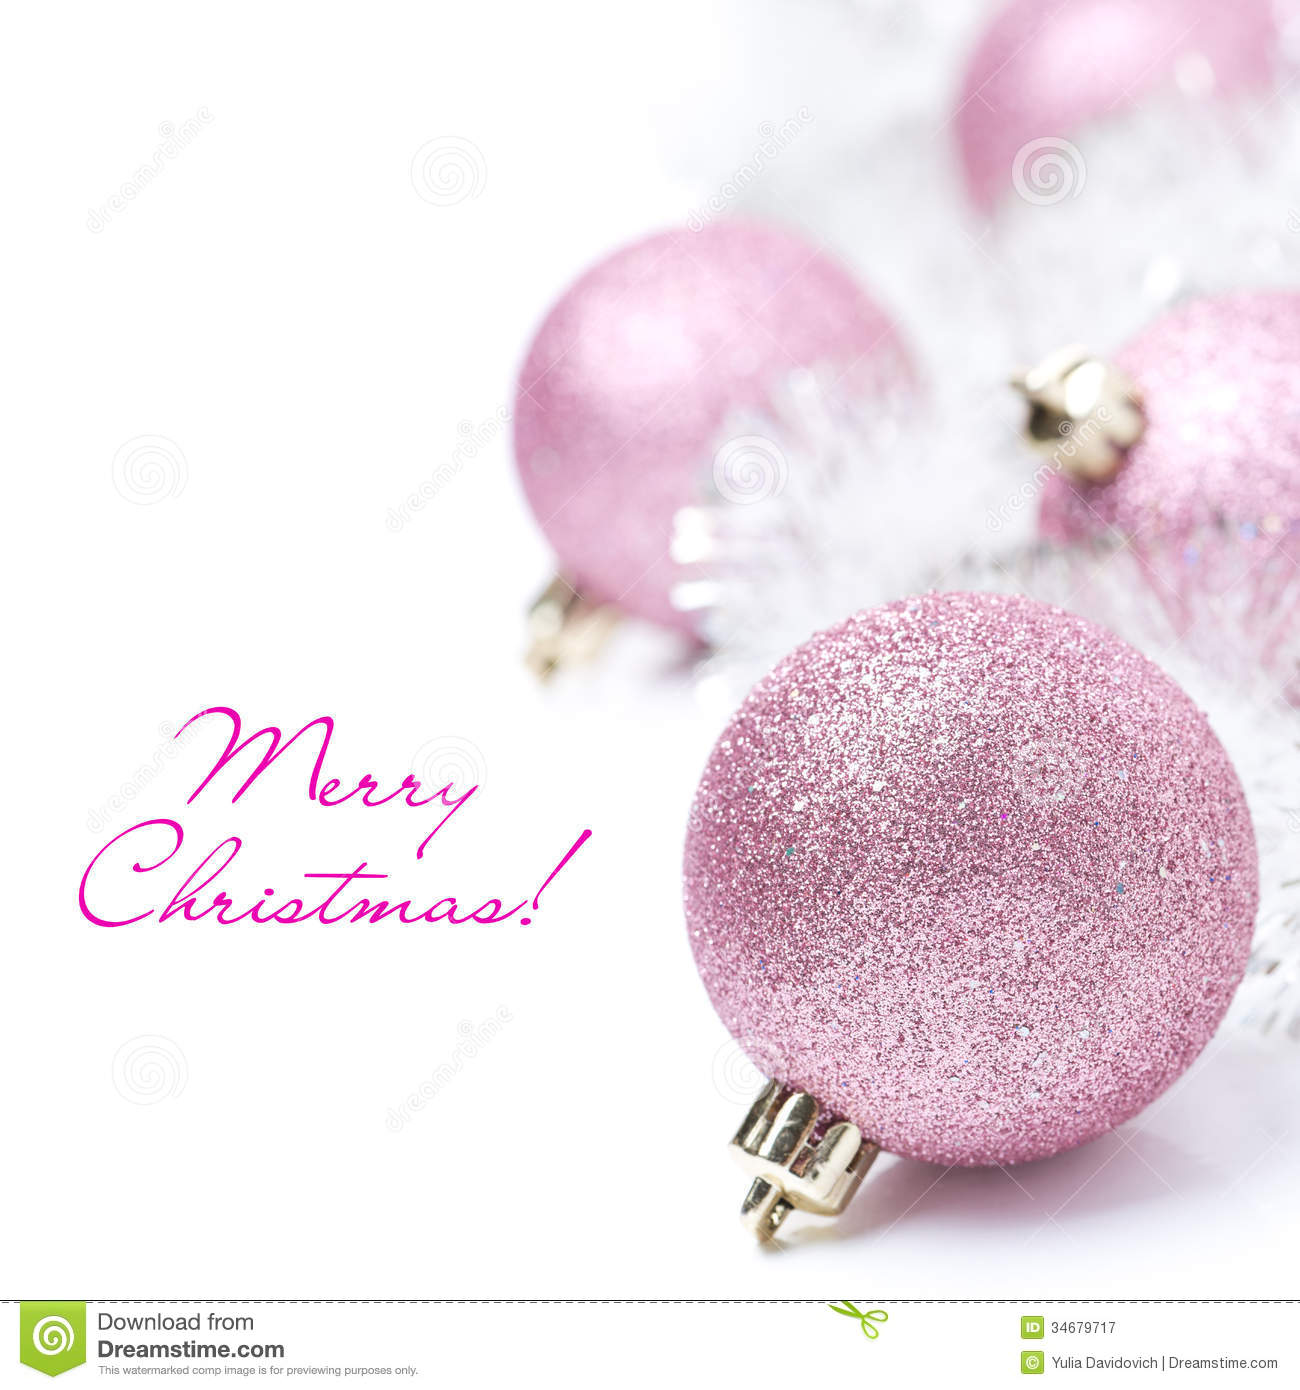 Pink Christmas Ornament Royalty Free Stock Images - Image: 35002849